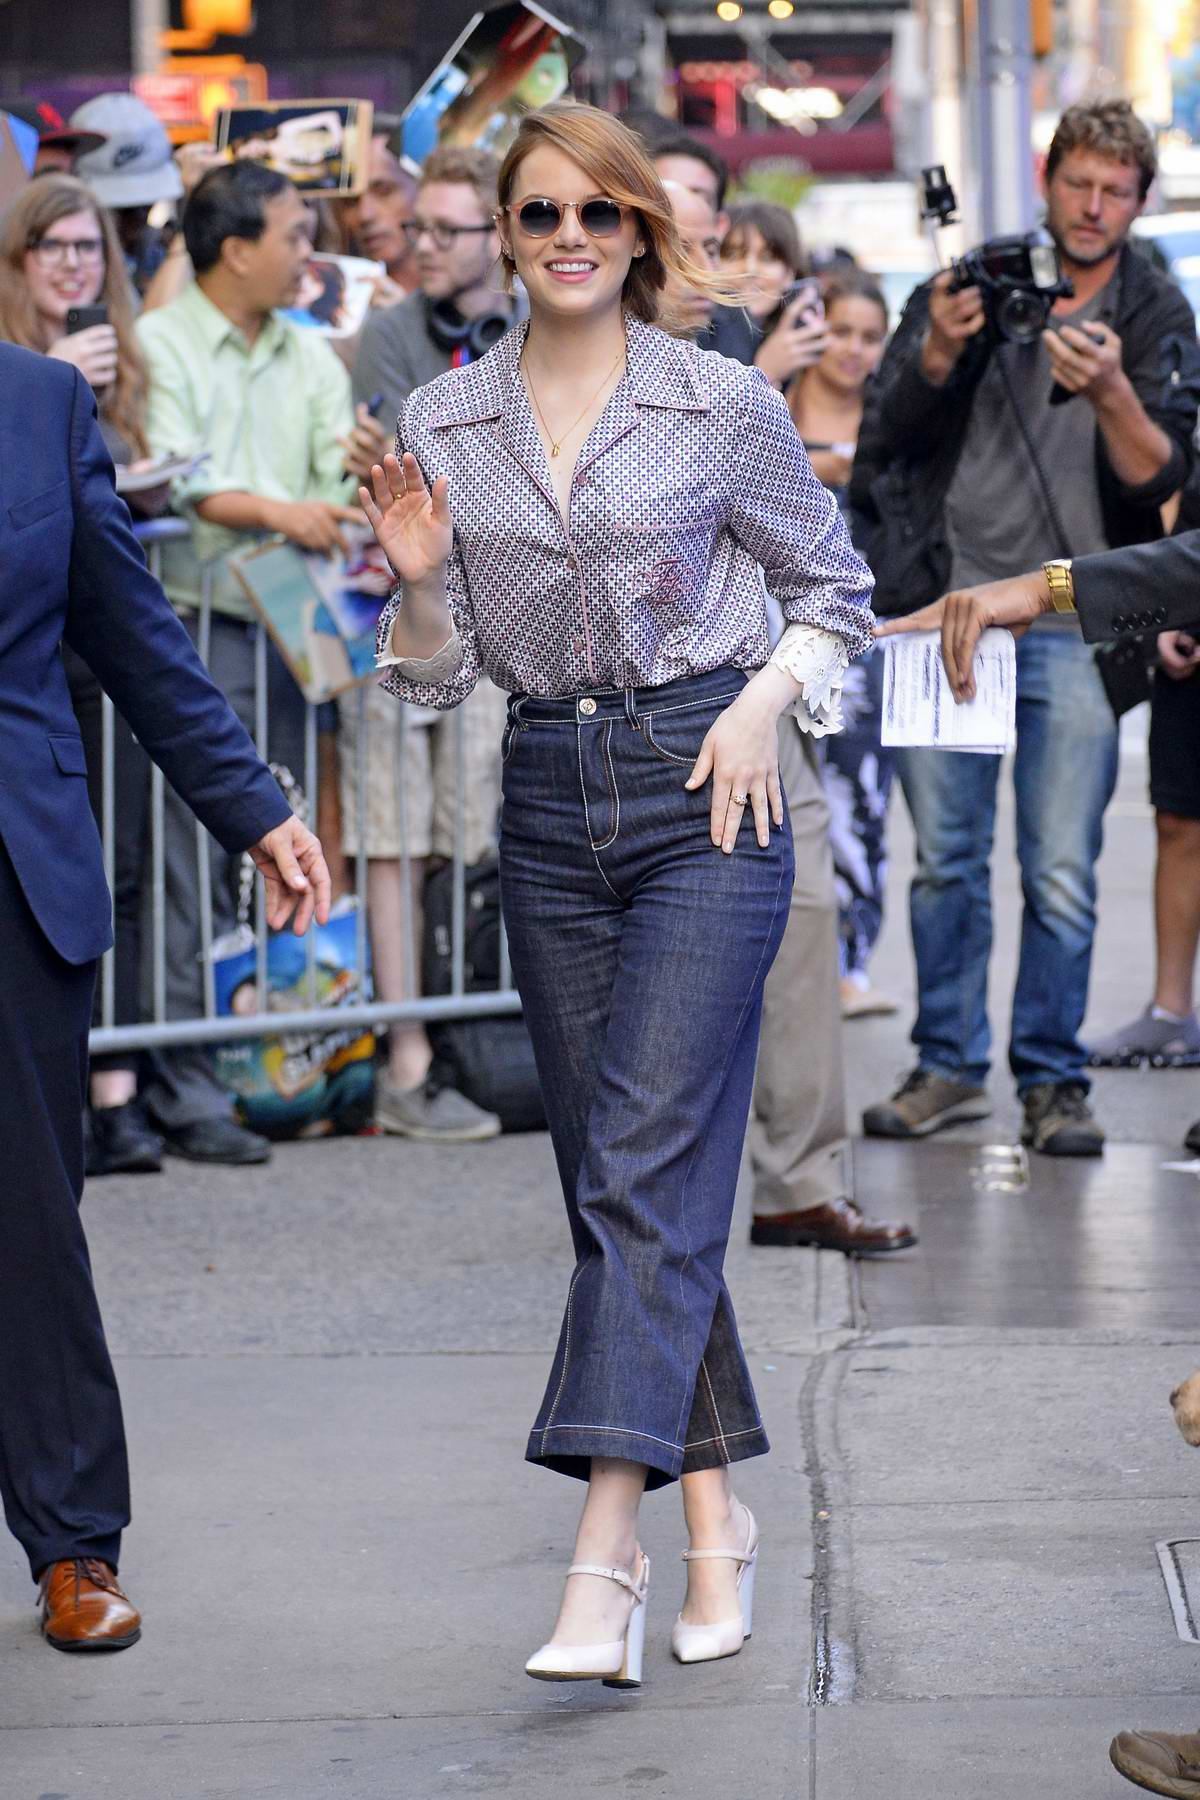 Emma Stone wore a patterned shirt and high waisted dark jeans as she arrives at Good Morning America in New York City